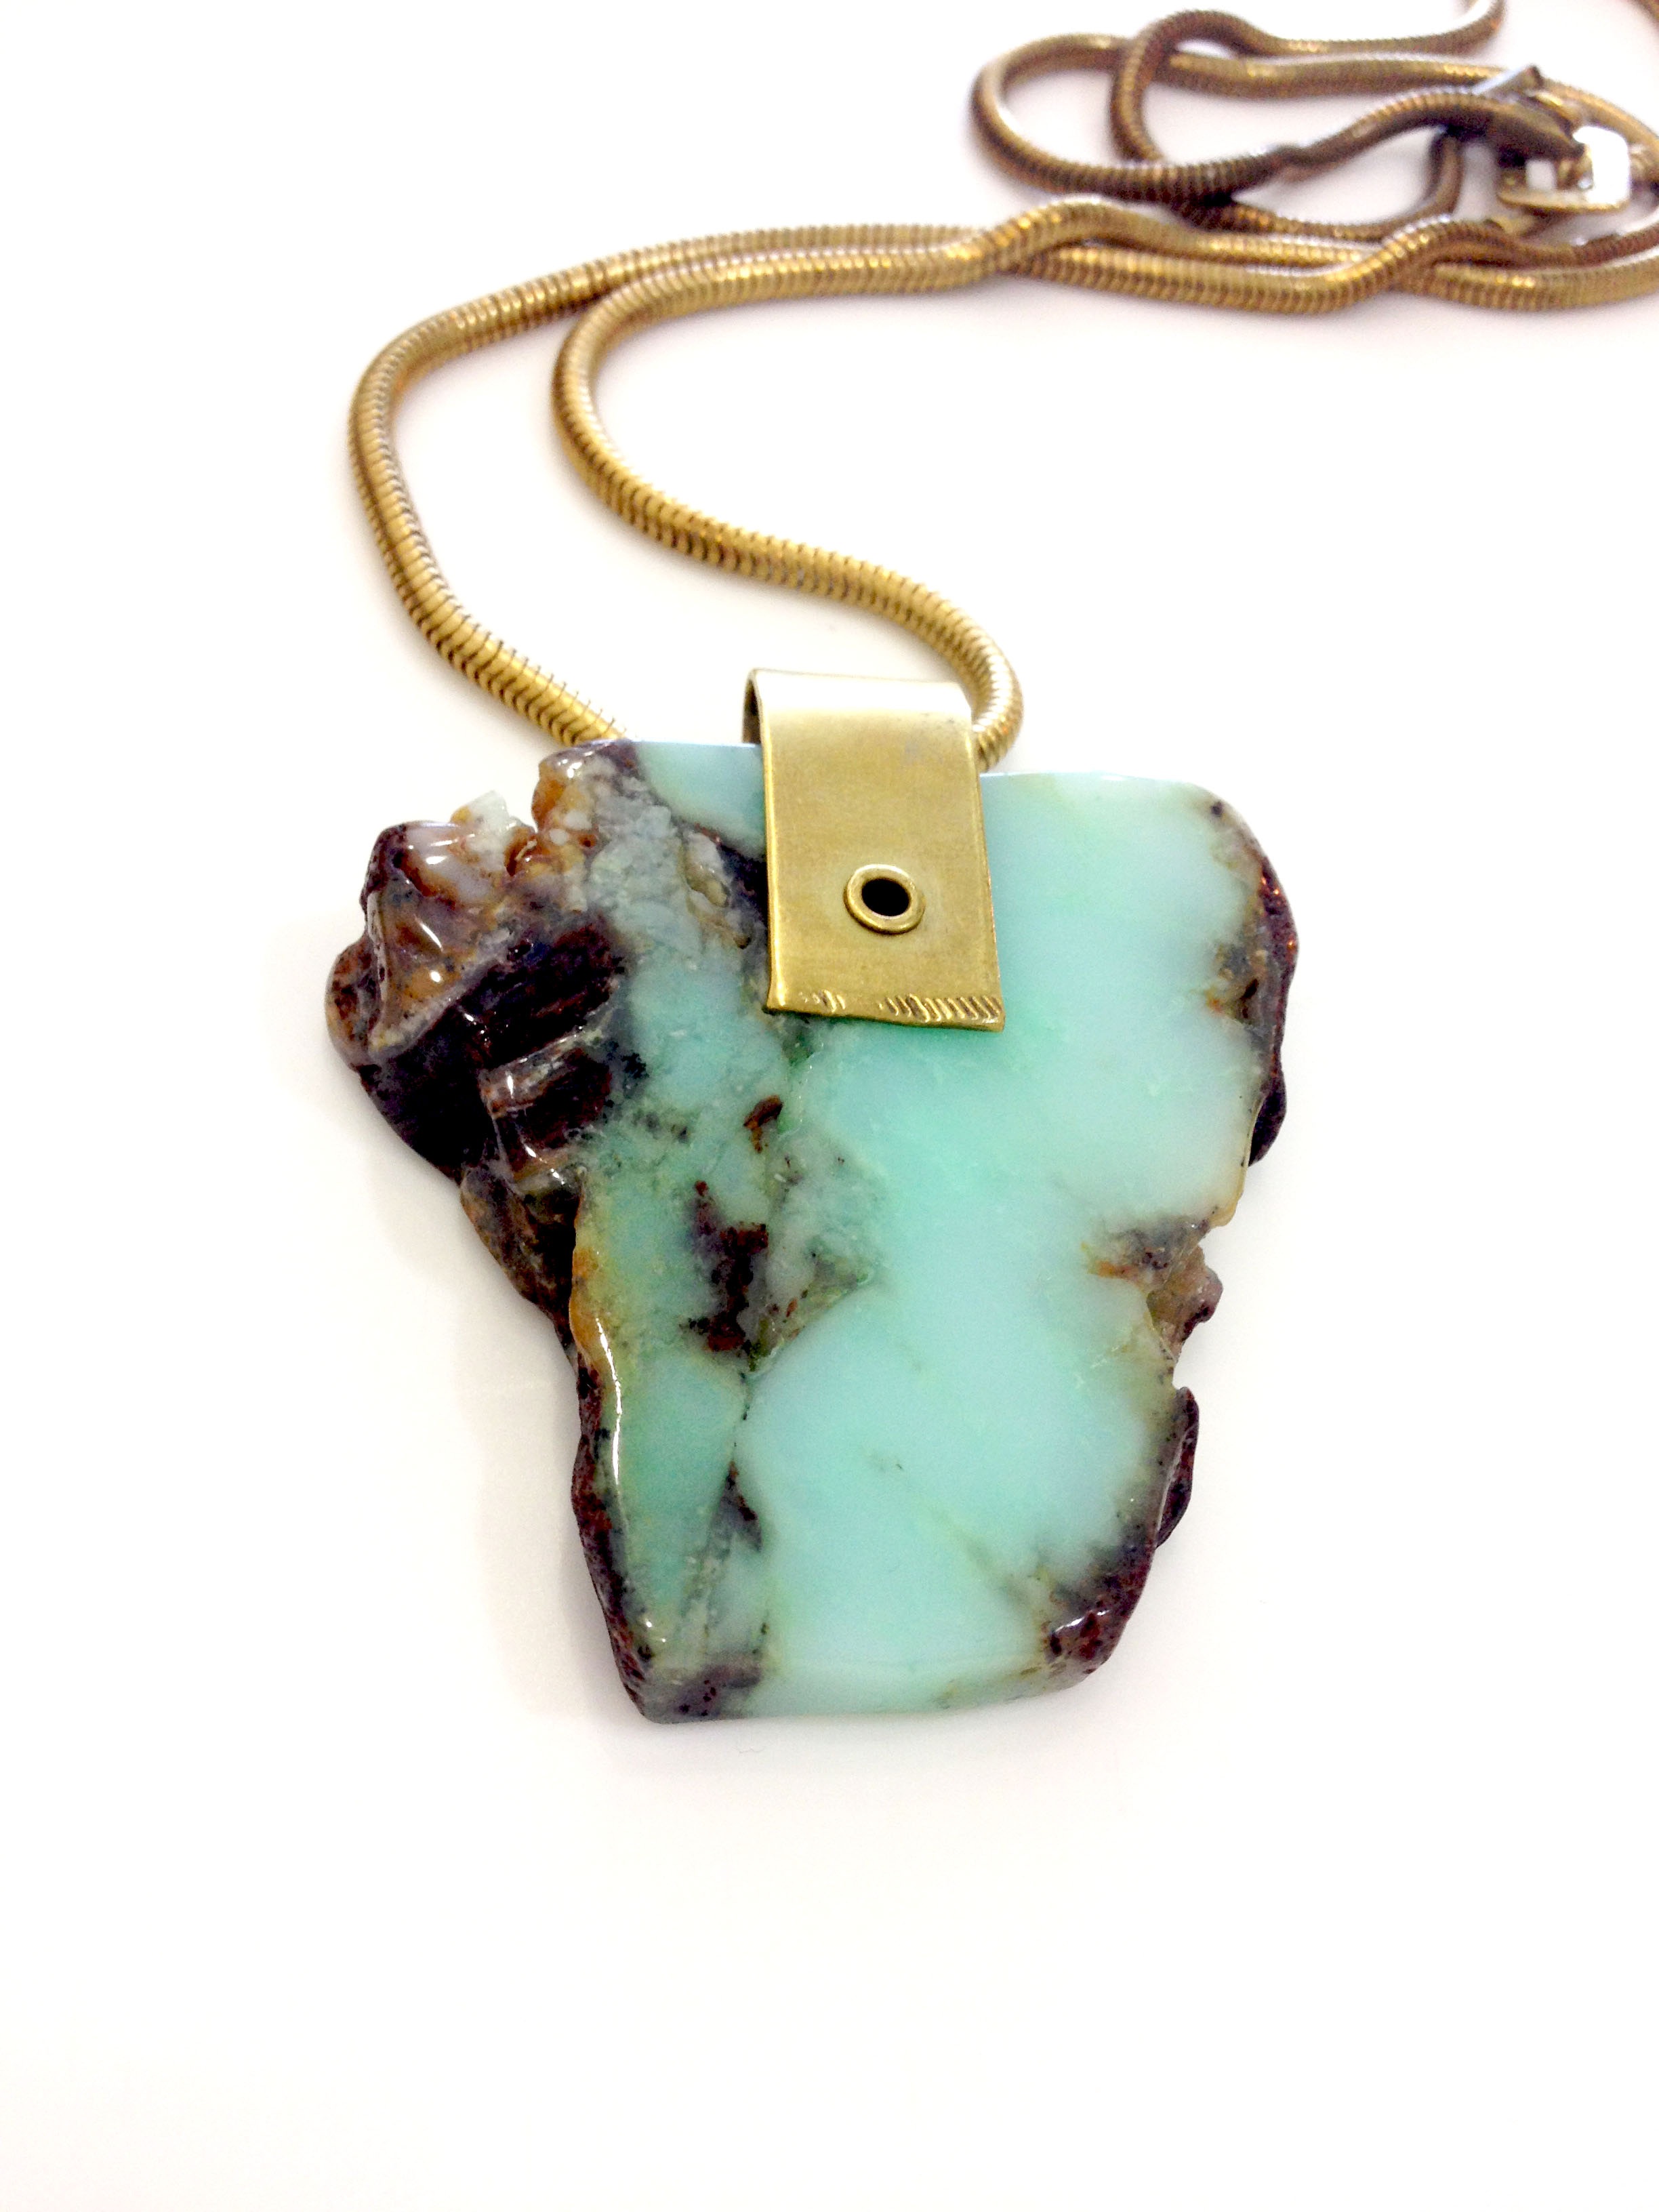 with muchogrande magic necklace stone jewellery divine small chrysoprase hamsa item big wide gold